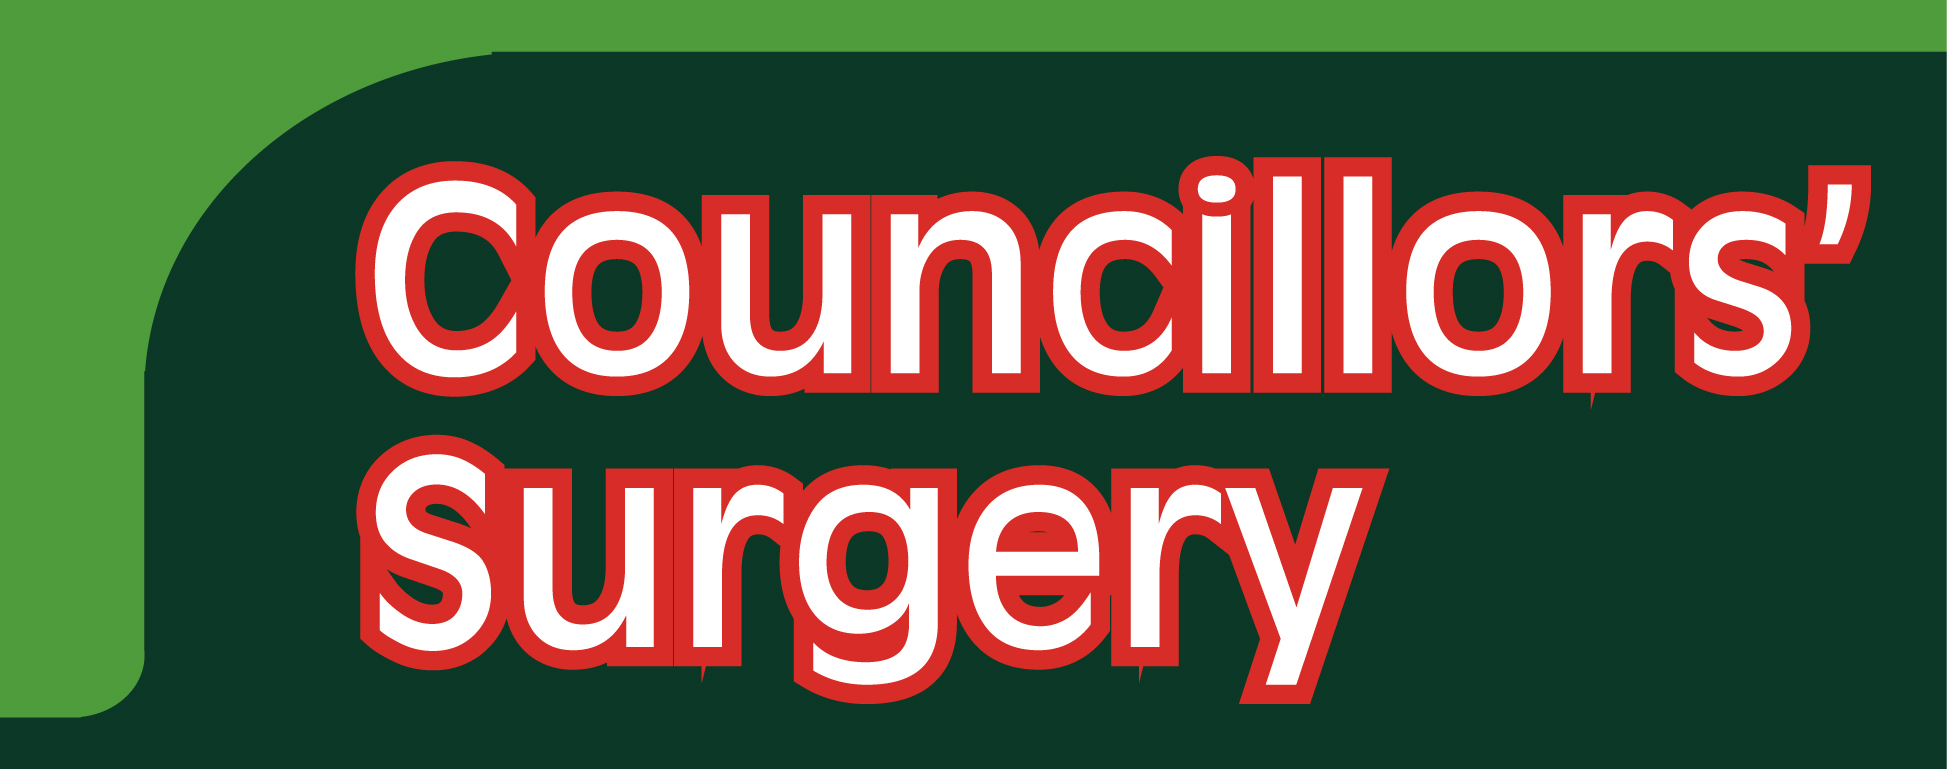 Councillors' Surgeries -Shafto, Central and Neville Ward